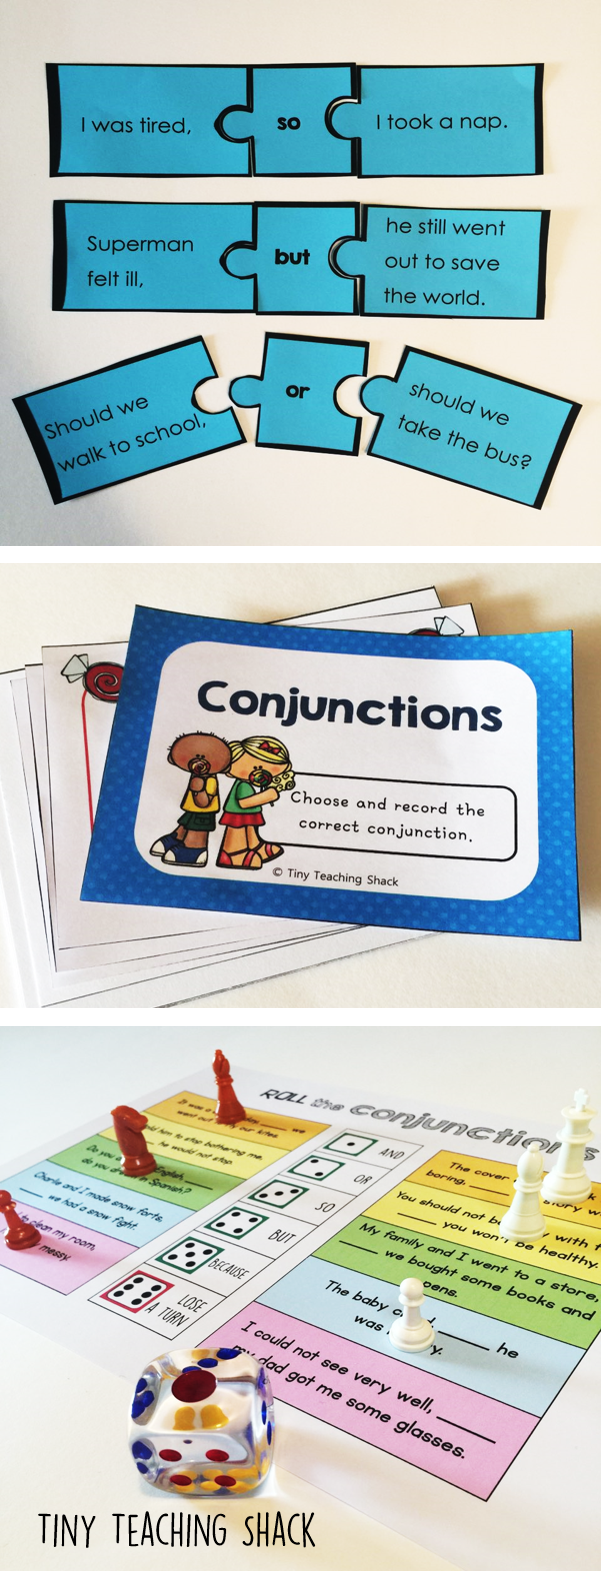 https://www.teacherspayteachers.com/Product/Conjunction-Center-Activities-so-but-and-or-becausefor-2475023